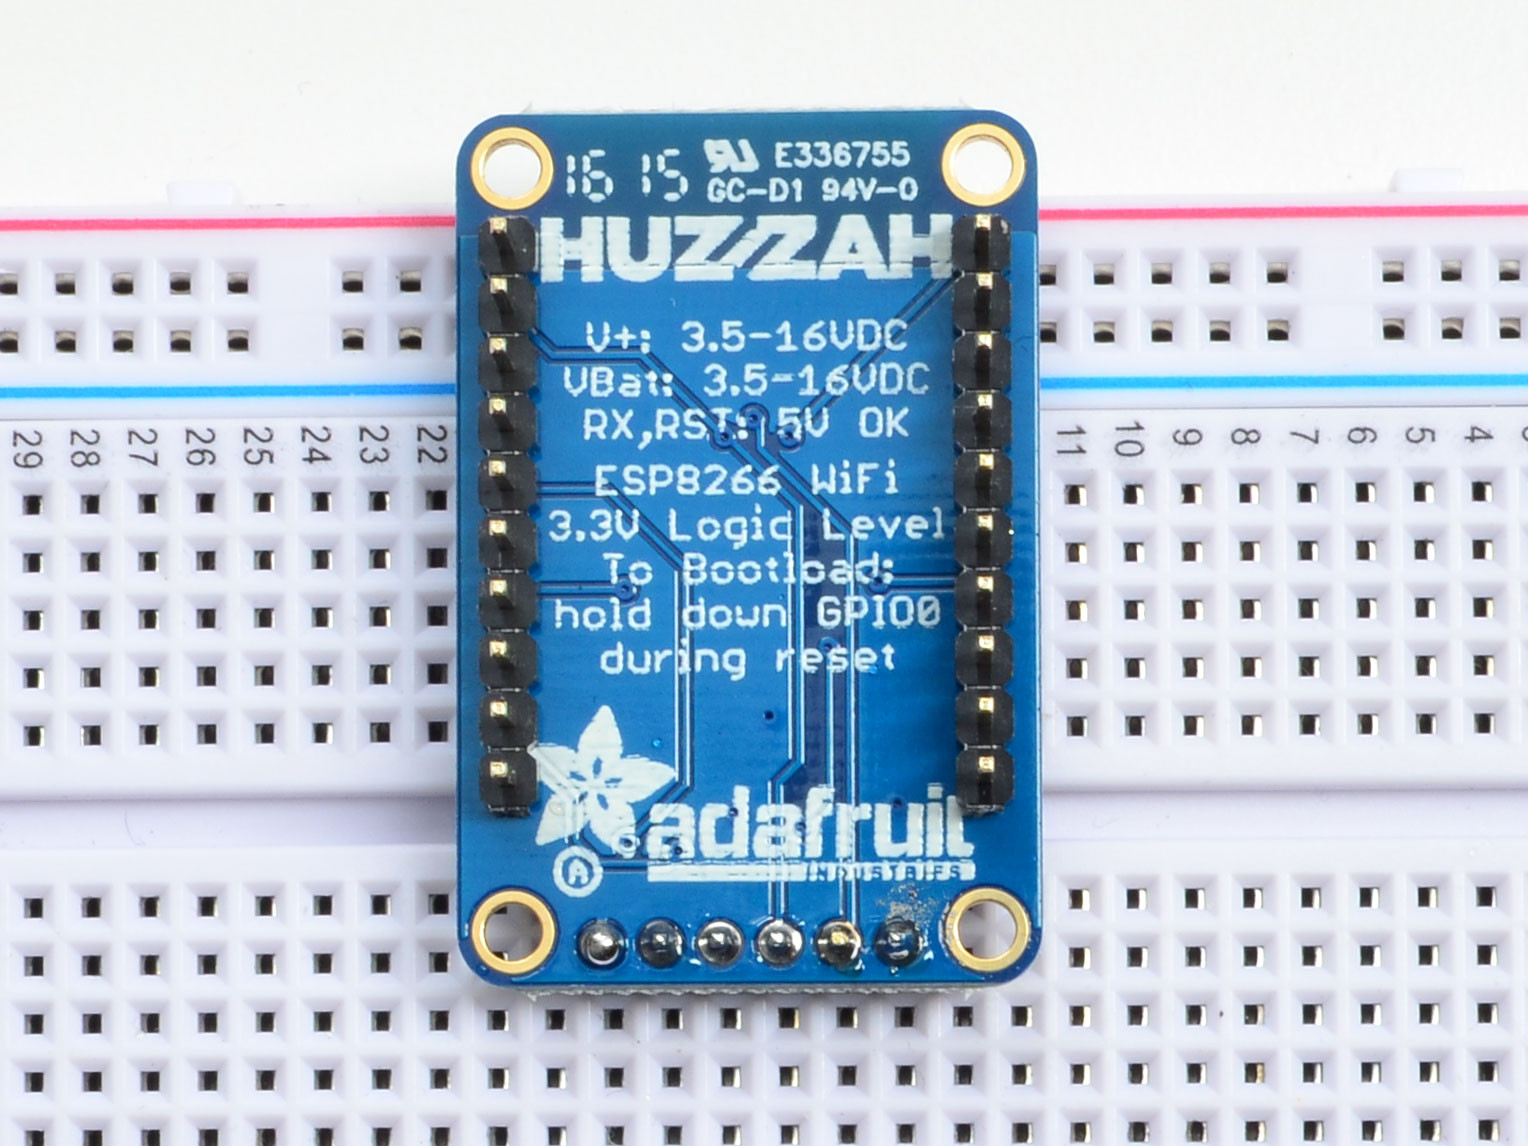 adafruit_products_done2.jpg